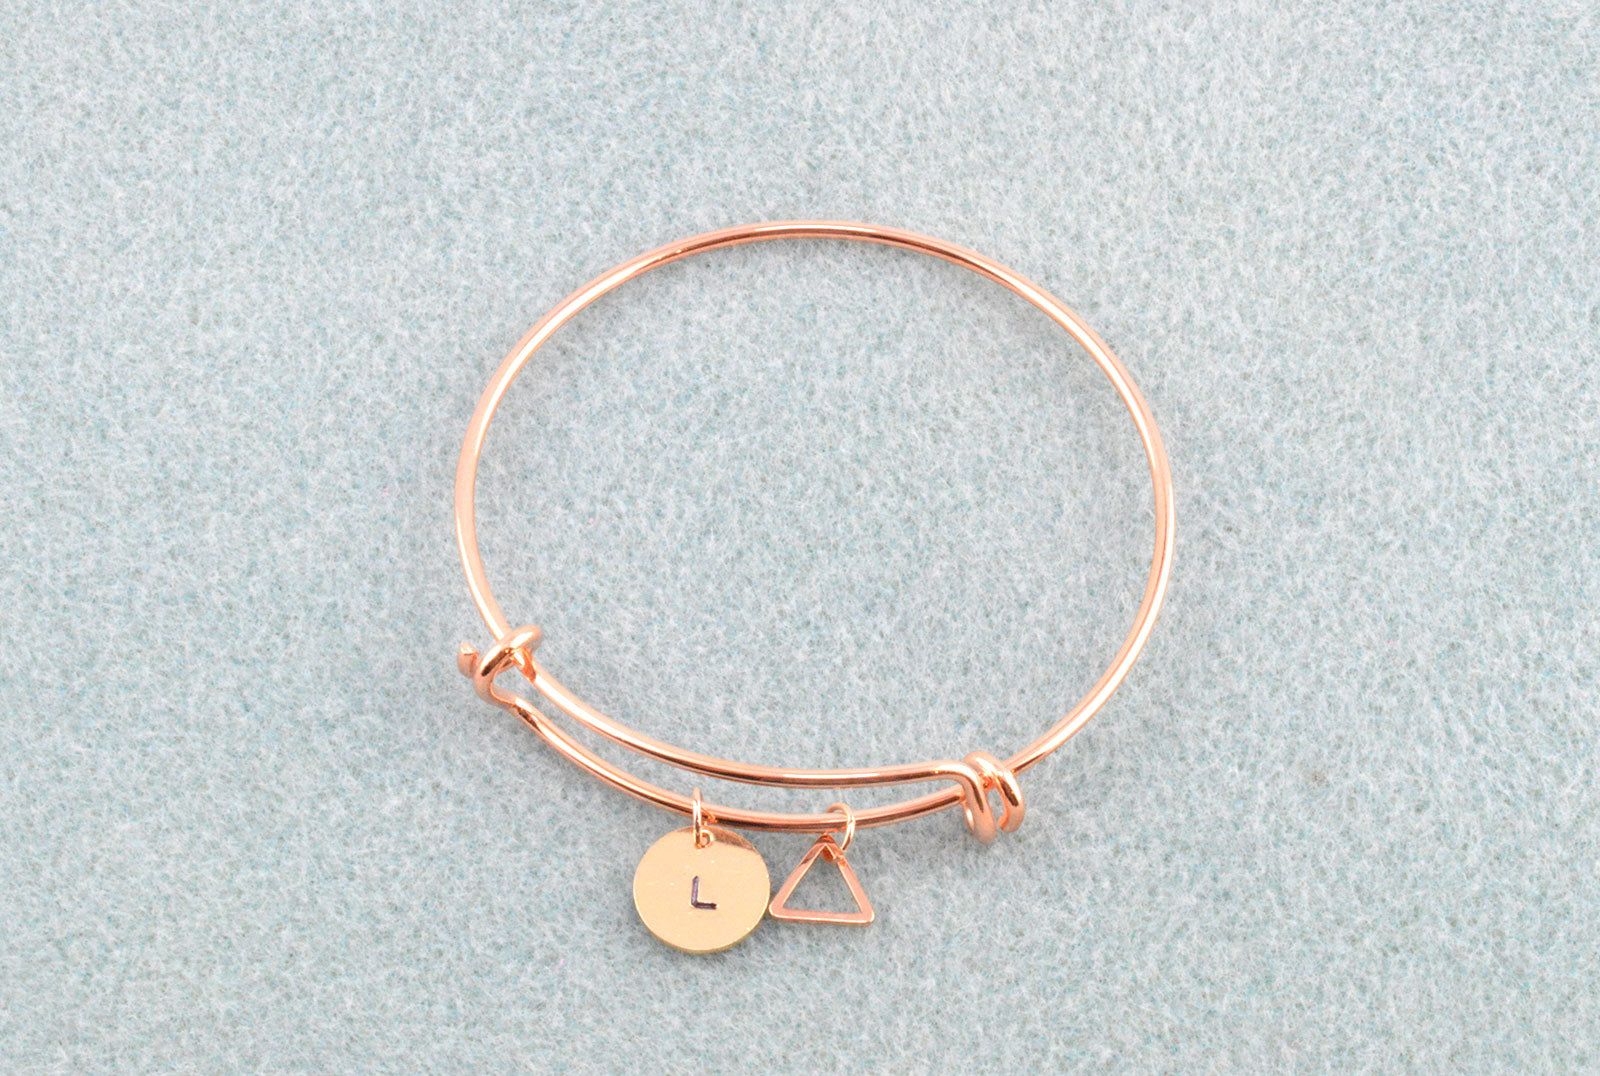 different products sparkly pretty rose bracelets accessories bangle self to charm improve bangles things esteem and handmade clothing jewellery various themes gold